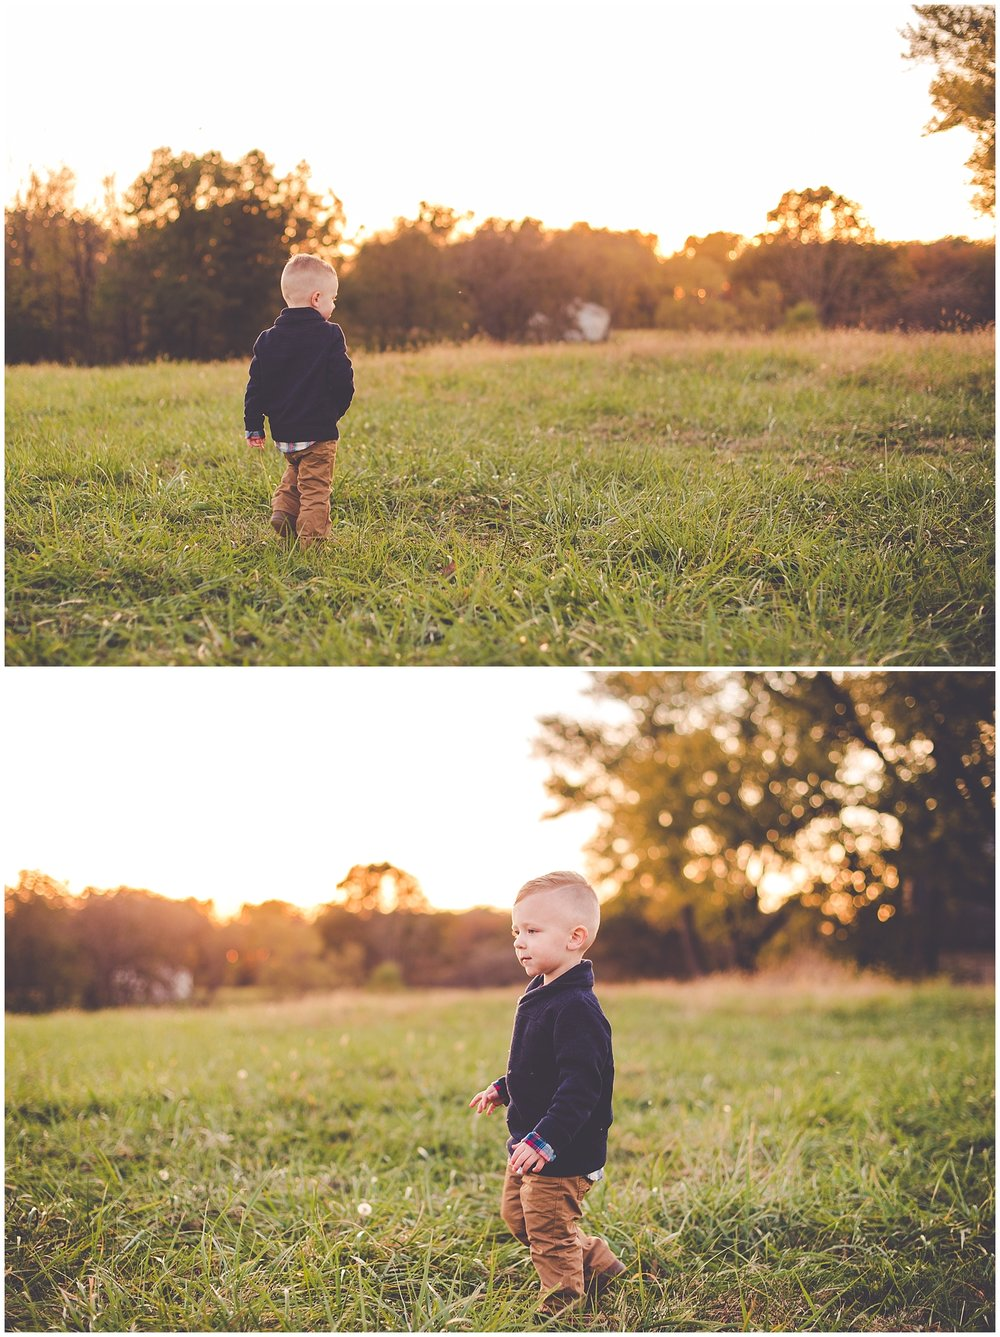 By Kara - Kara Evans - Illinois Family Photographer - Fall Family Farm Session - Griggsville, Illinois Photographer - Western Illinois Family Photographer